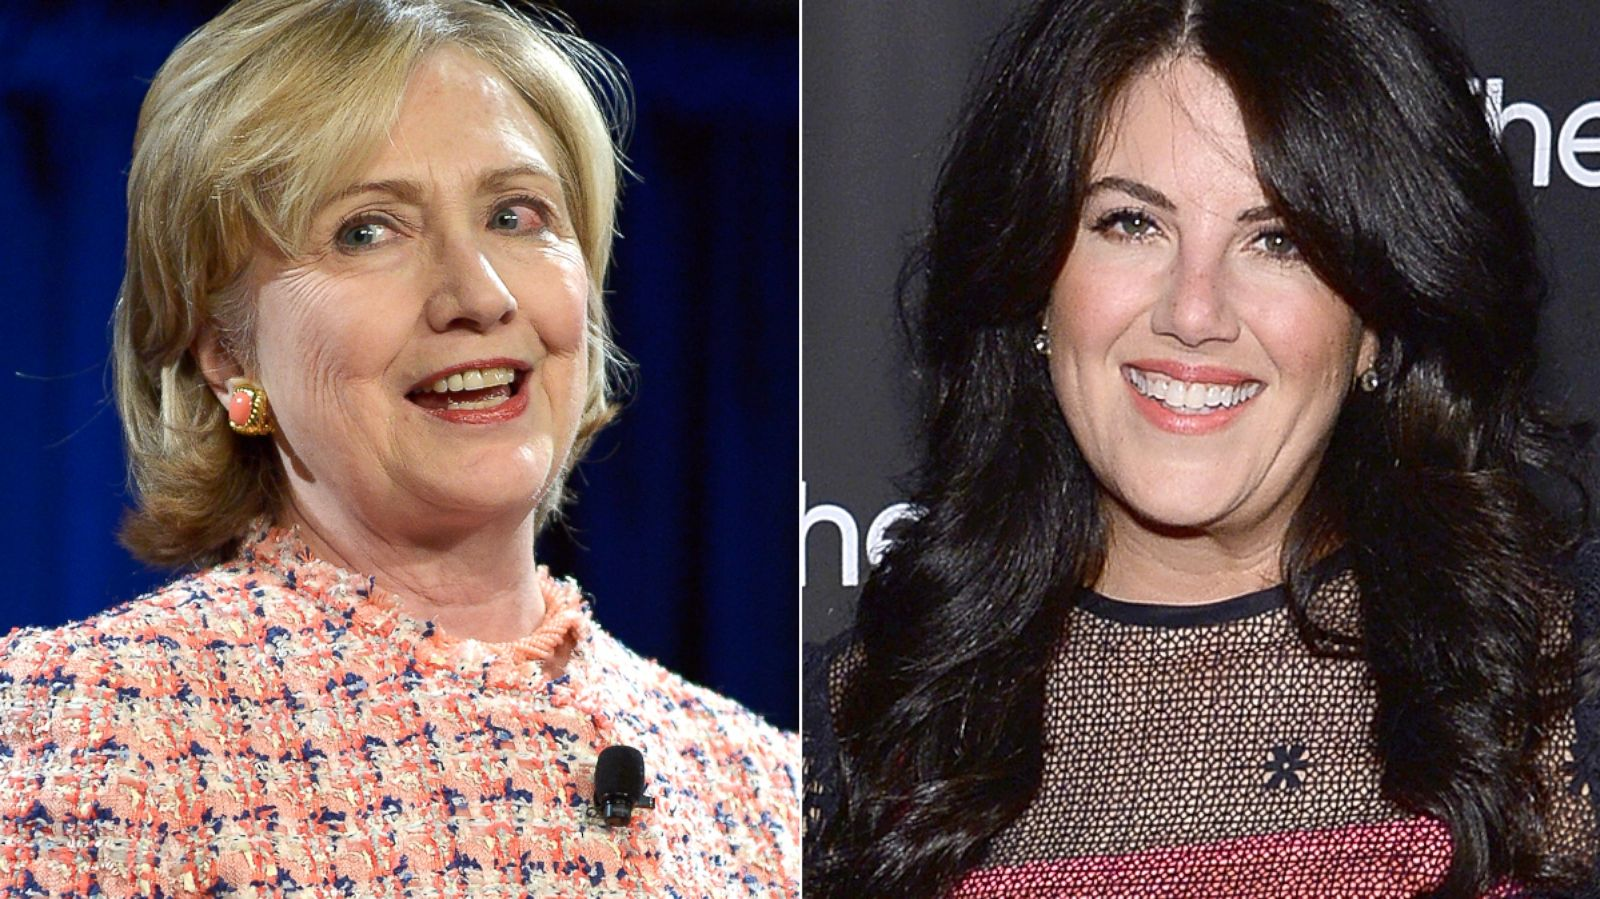 What did hillary clinton say about monica